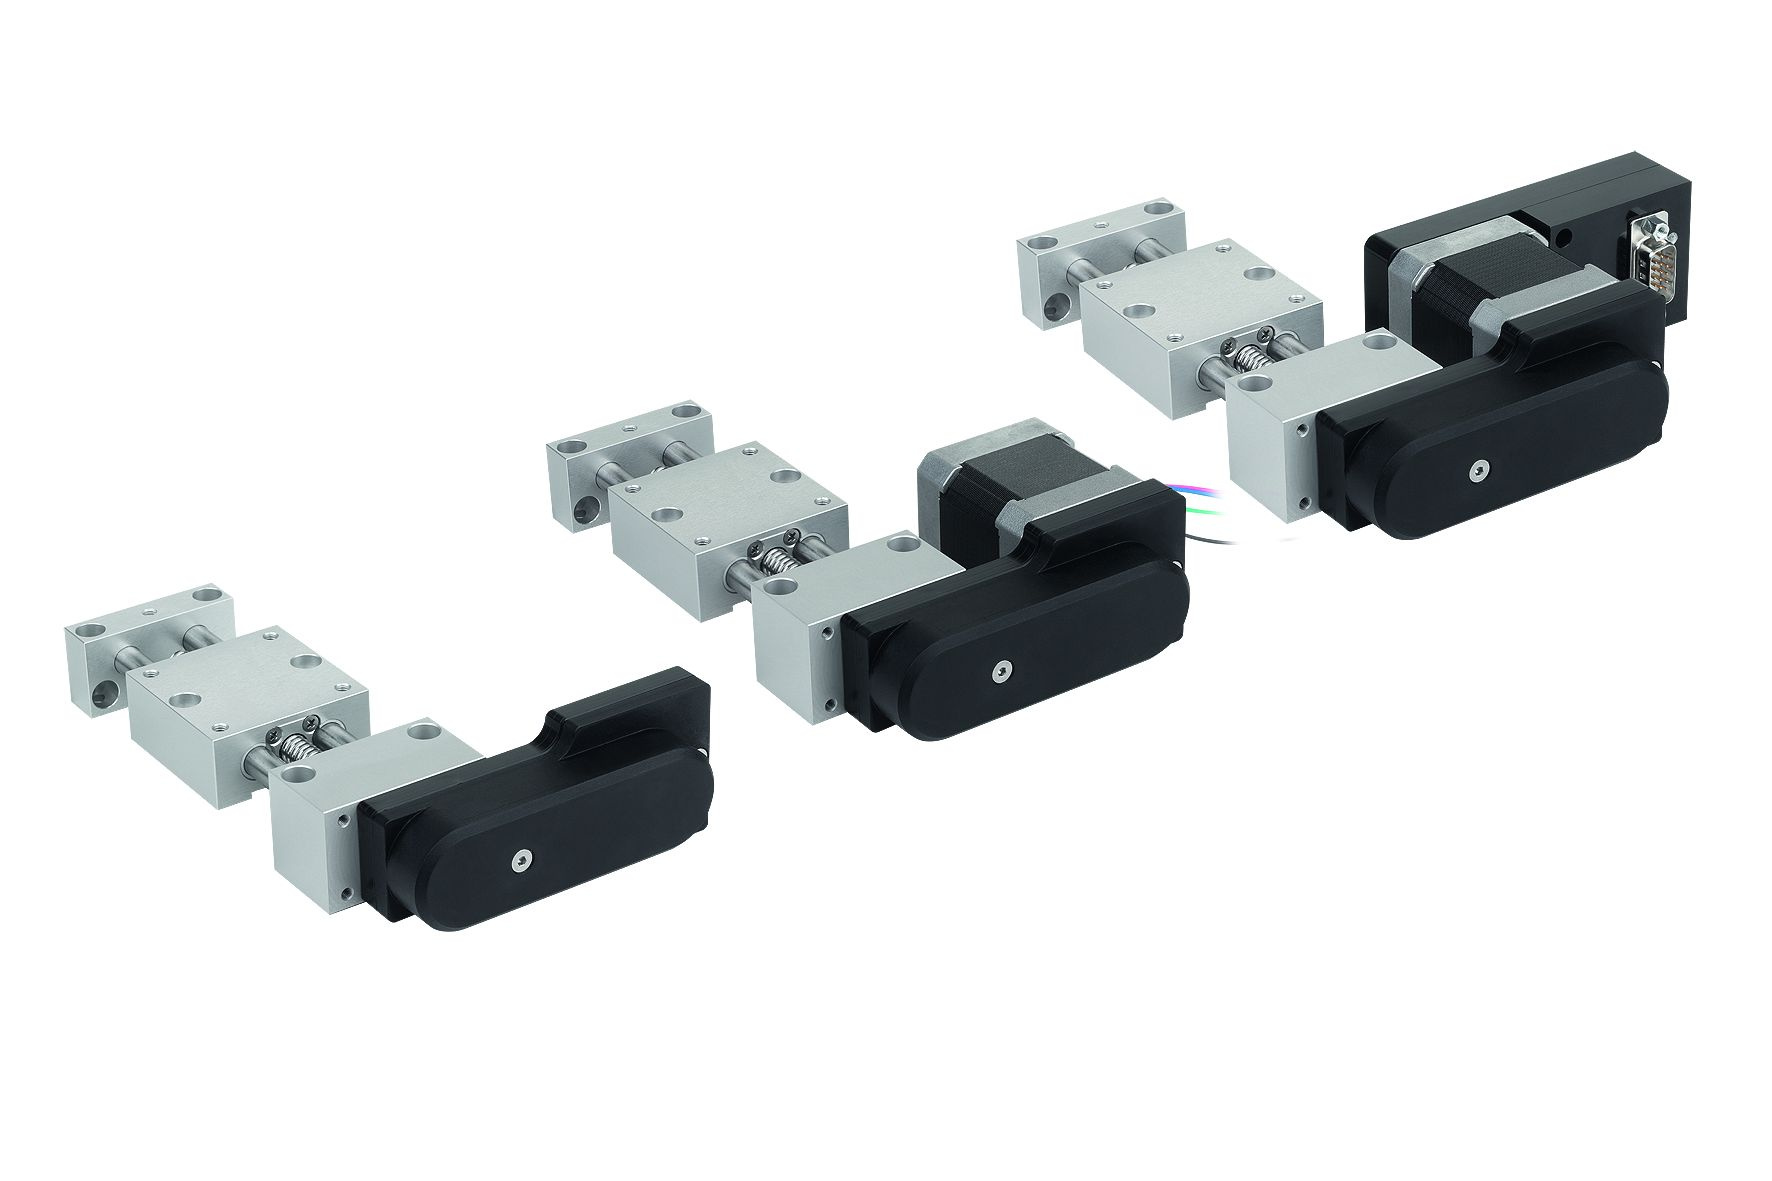 Material: Bearing block and carriage aluminium alloy anodized. Guide column and threaded spindle wit...